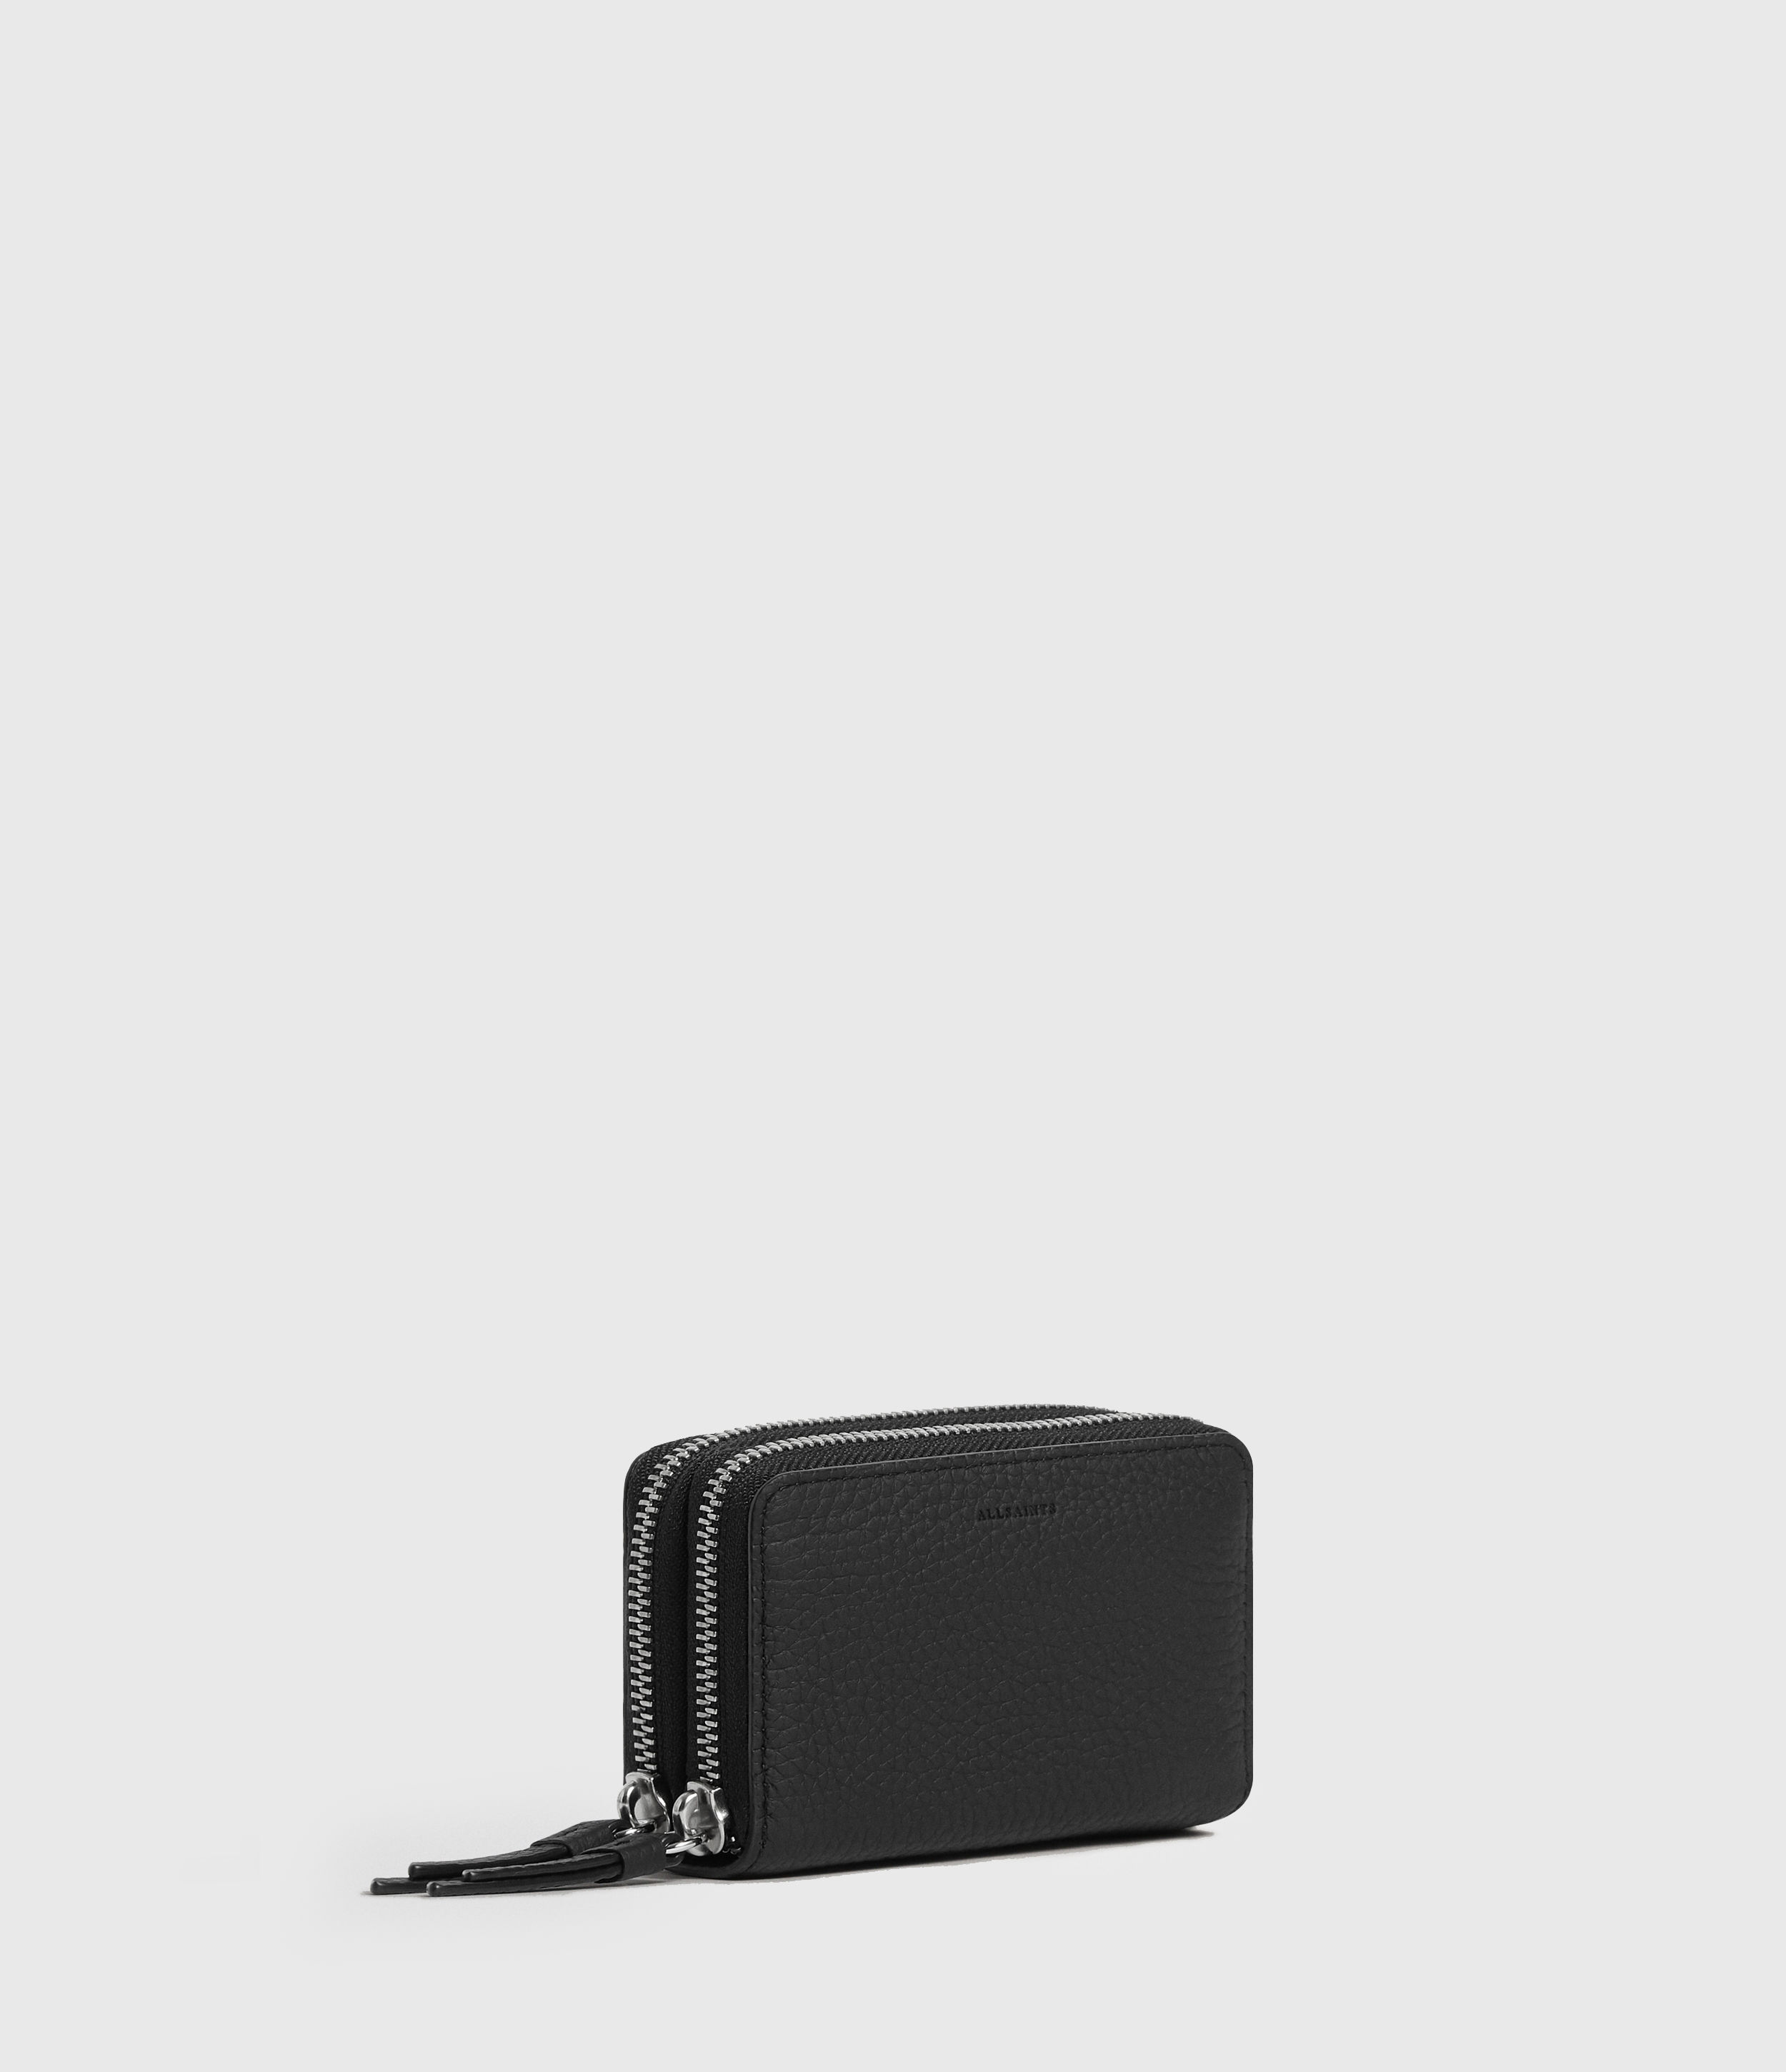 AllSaints Women's Soft Leather Grab-and-Go Fetch Two Pocket Cardholder, Black